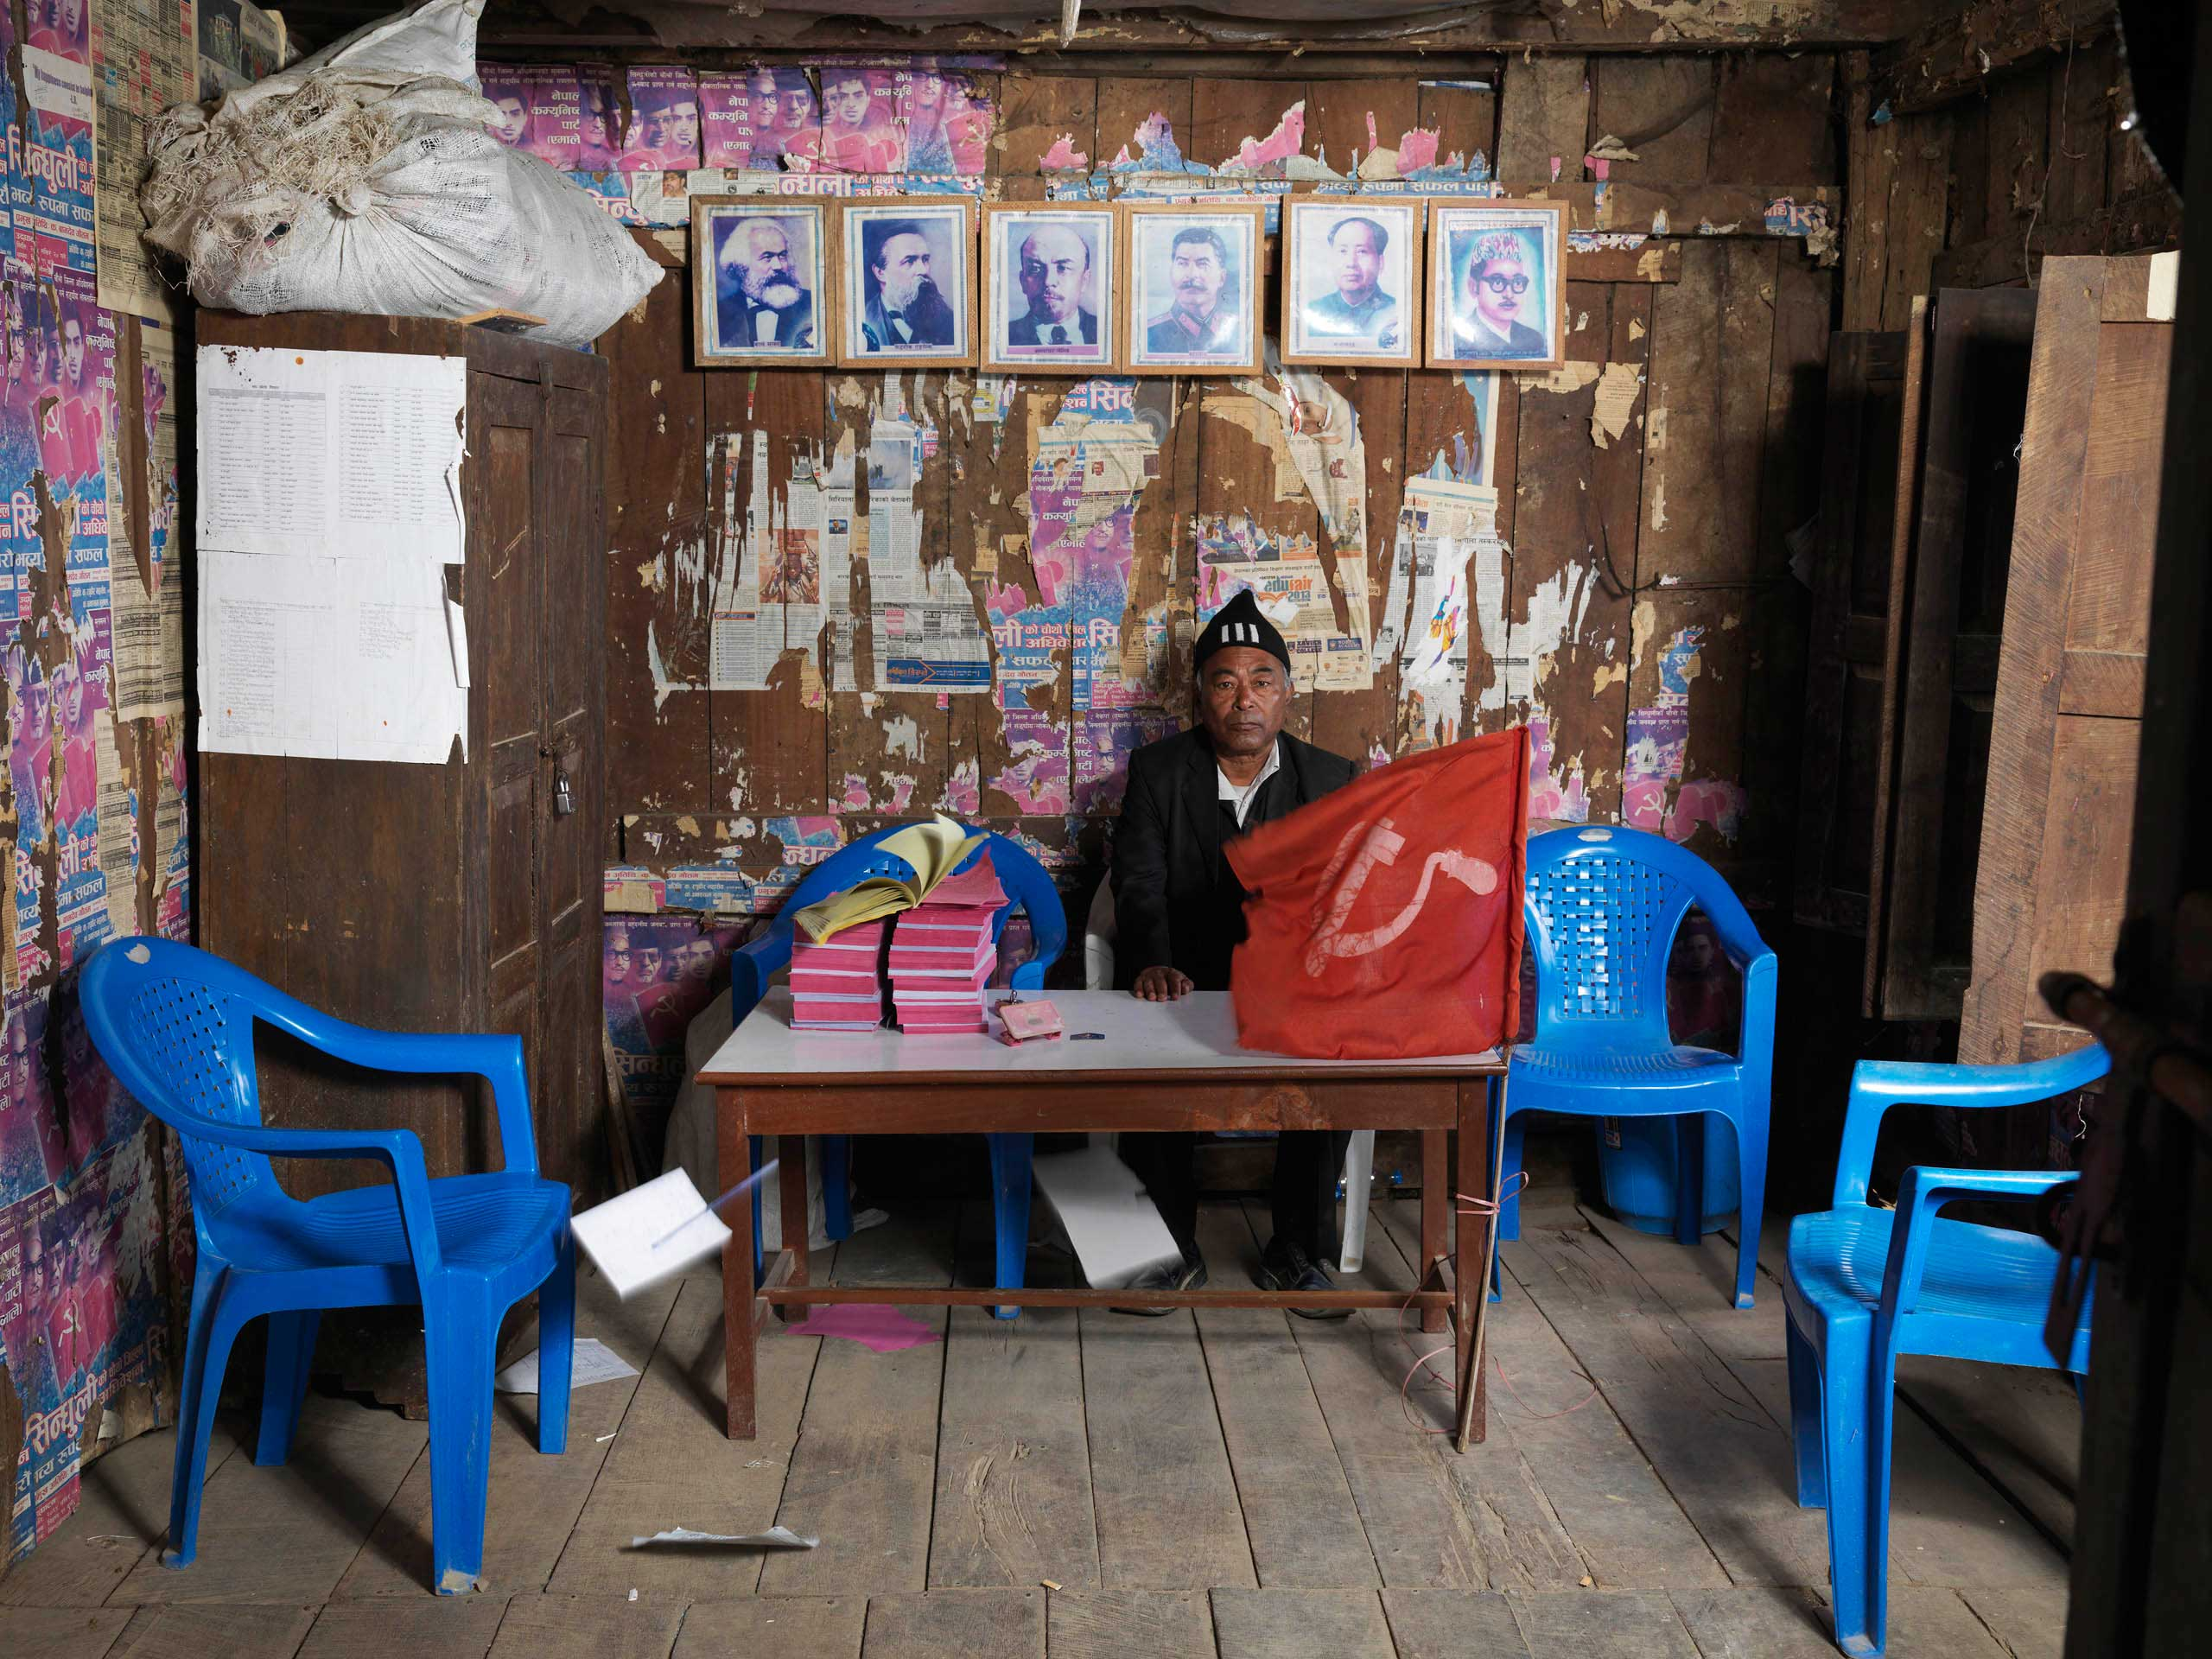 Office secretary and Central Committee member Lila Shrestha in the Sindhuli district office, Sindhuli town in Nepal. CPN (Marxist), a marginal party which did not win seats in the 2013 elections.